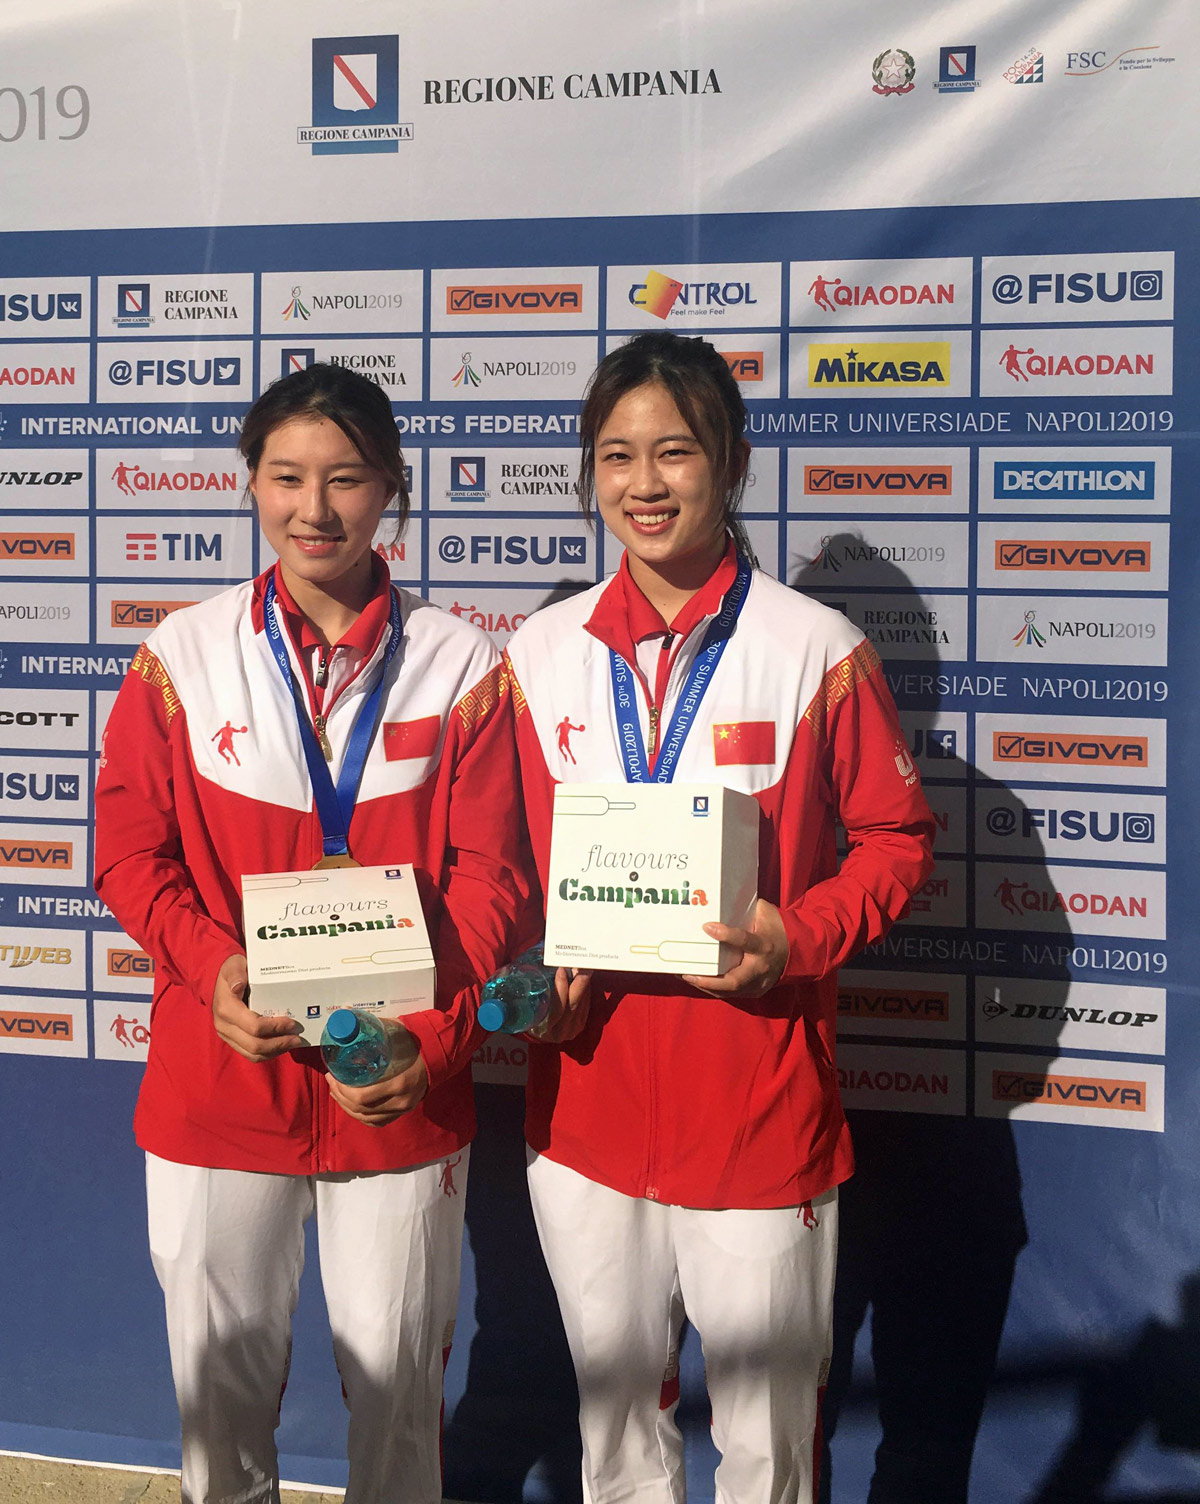 The golden girls from the Women's 10m Synchronised Platform, Jingjing Jiao and Jiao Wu, during their mixed zone interviews after the podium ceremony